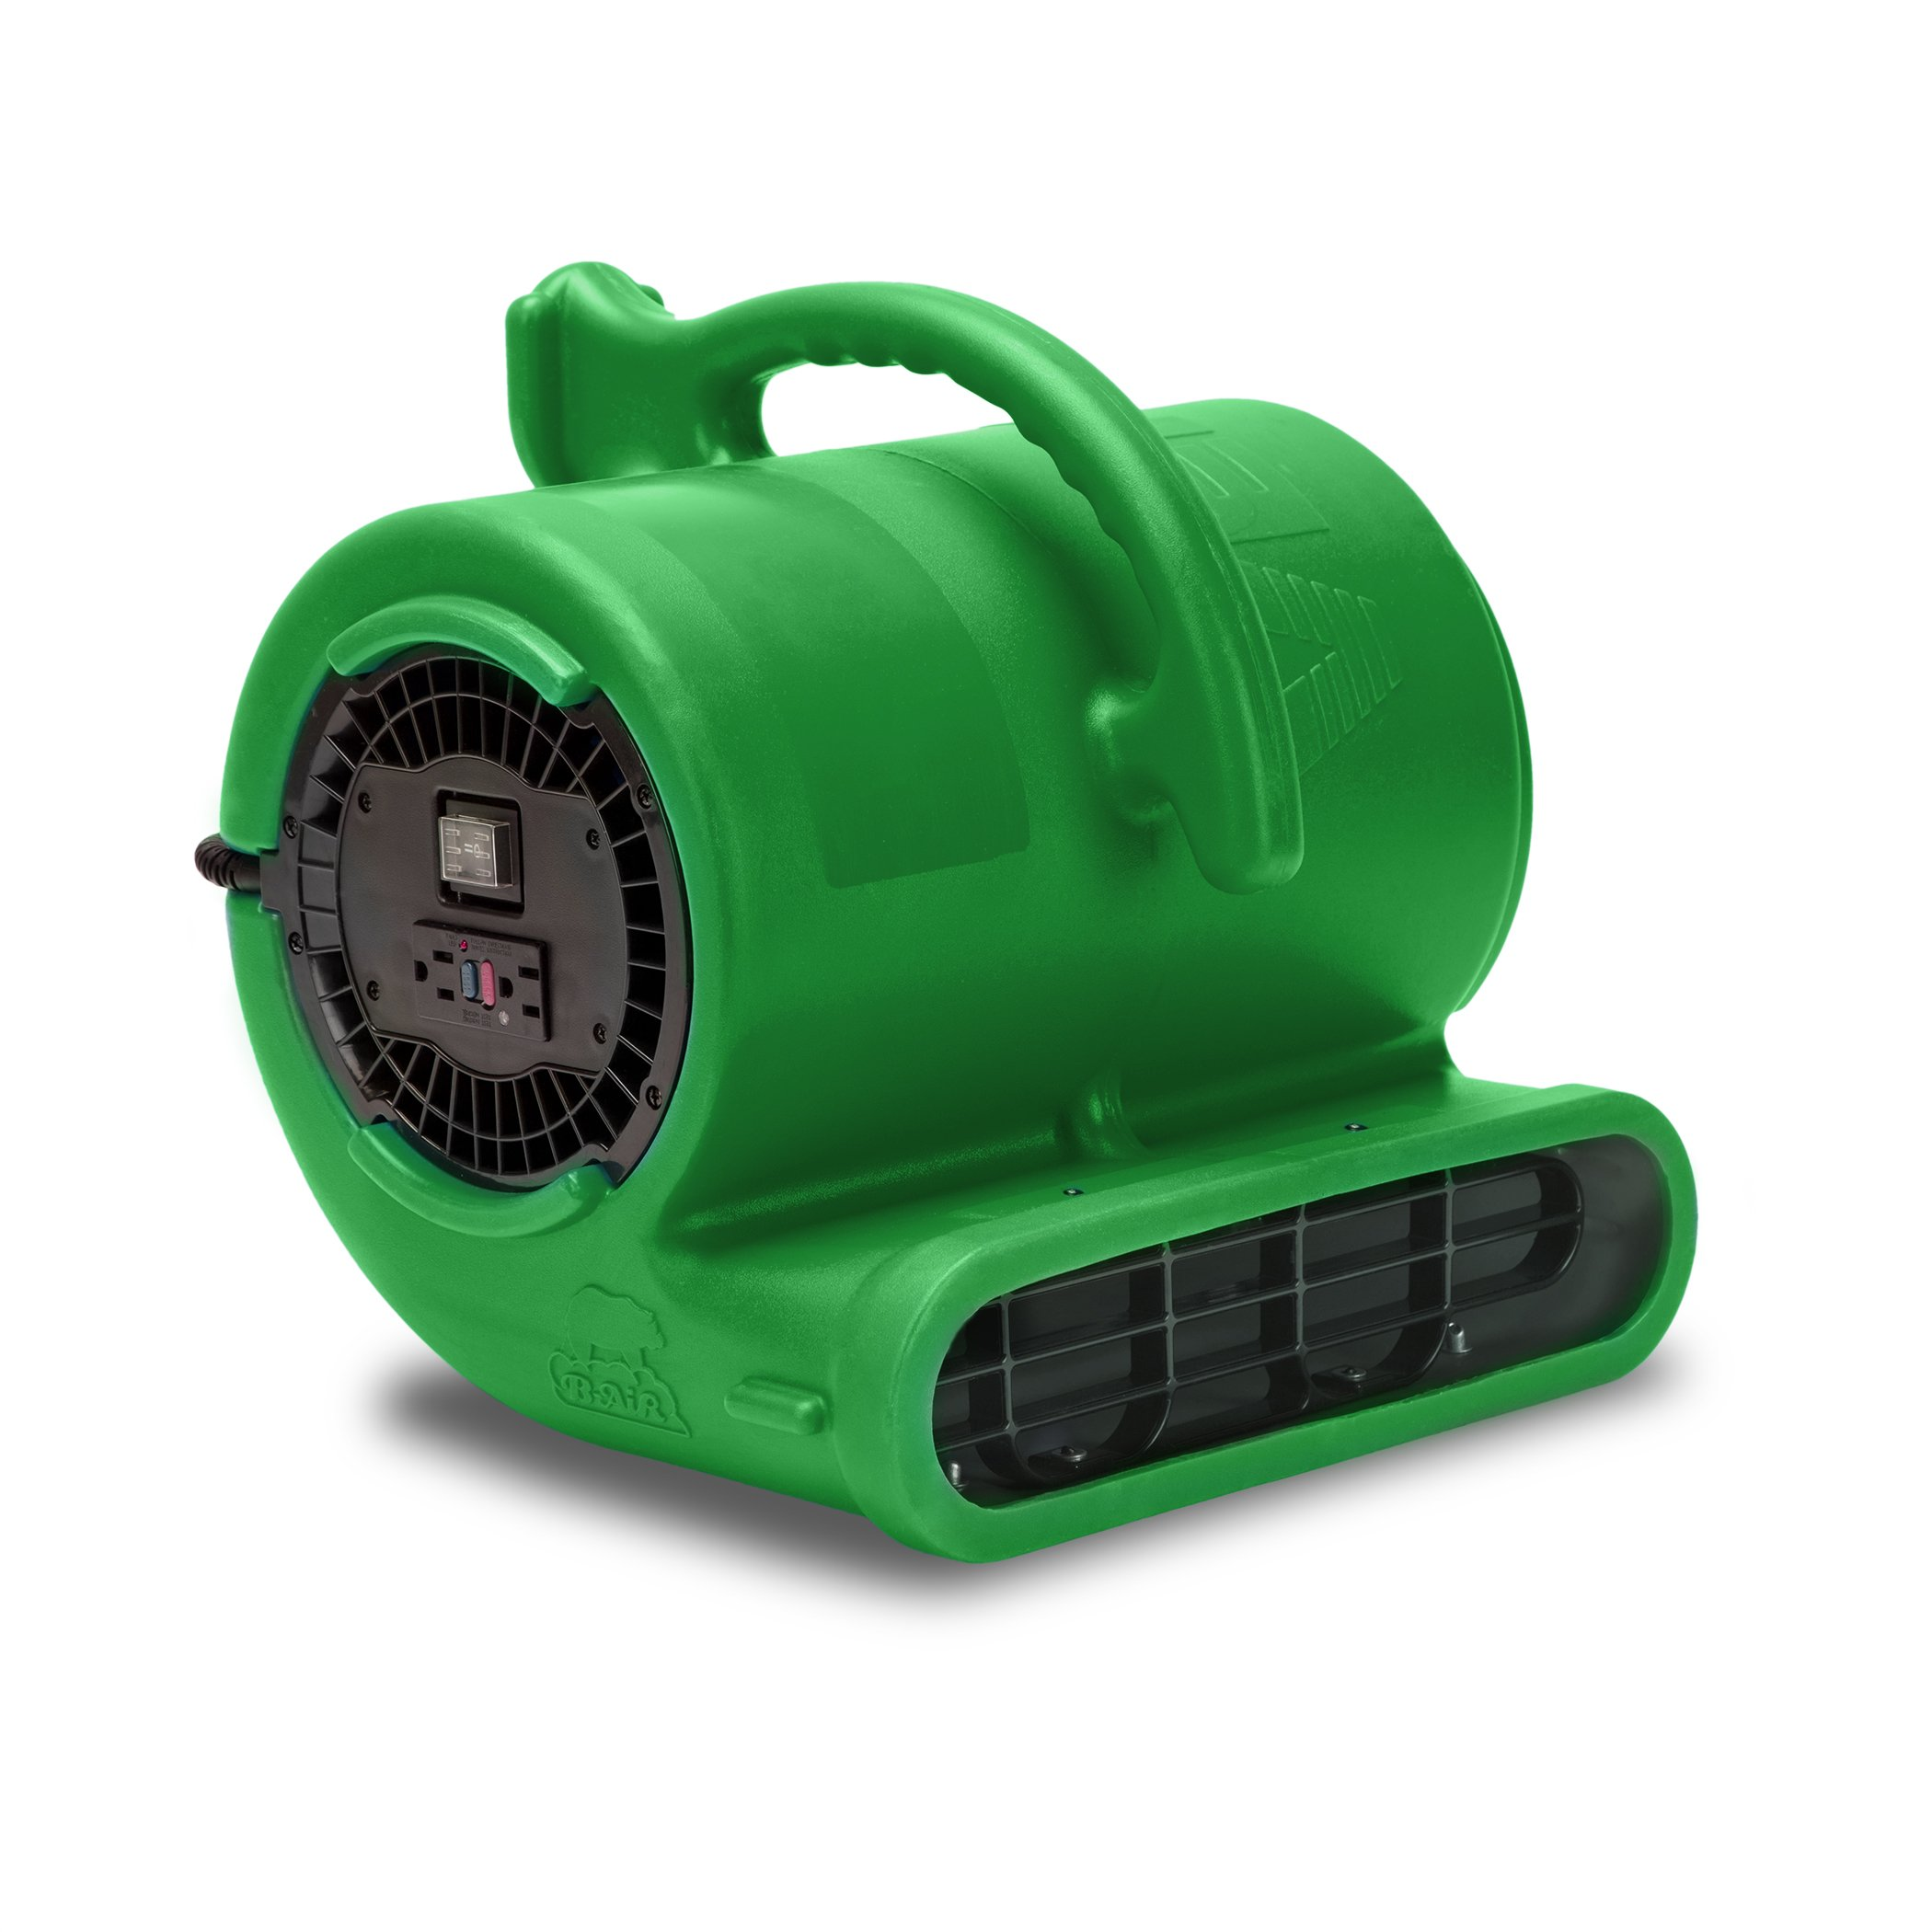 B-Air VENT VP-33 1/3 HP 2530 CFM Air Mover Carpet Dryer Floor Fan for Plumbing Janitorial Water Damage Restoration Green